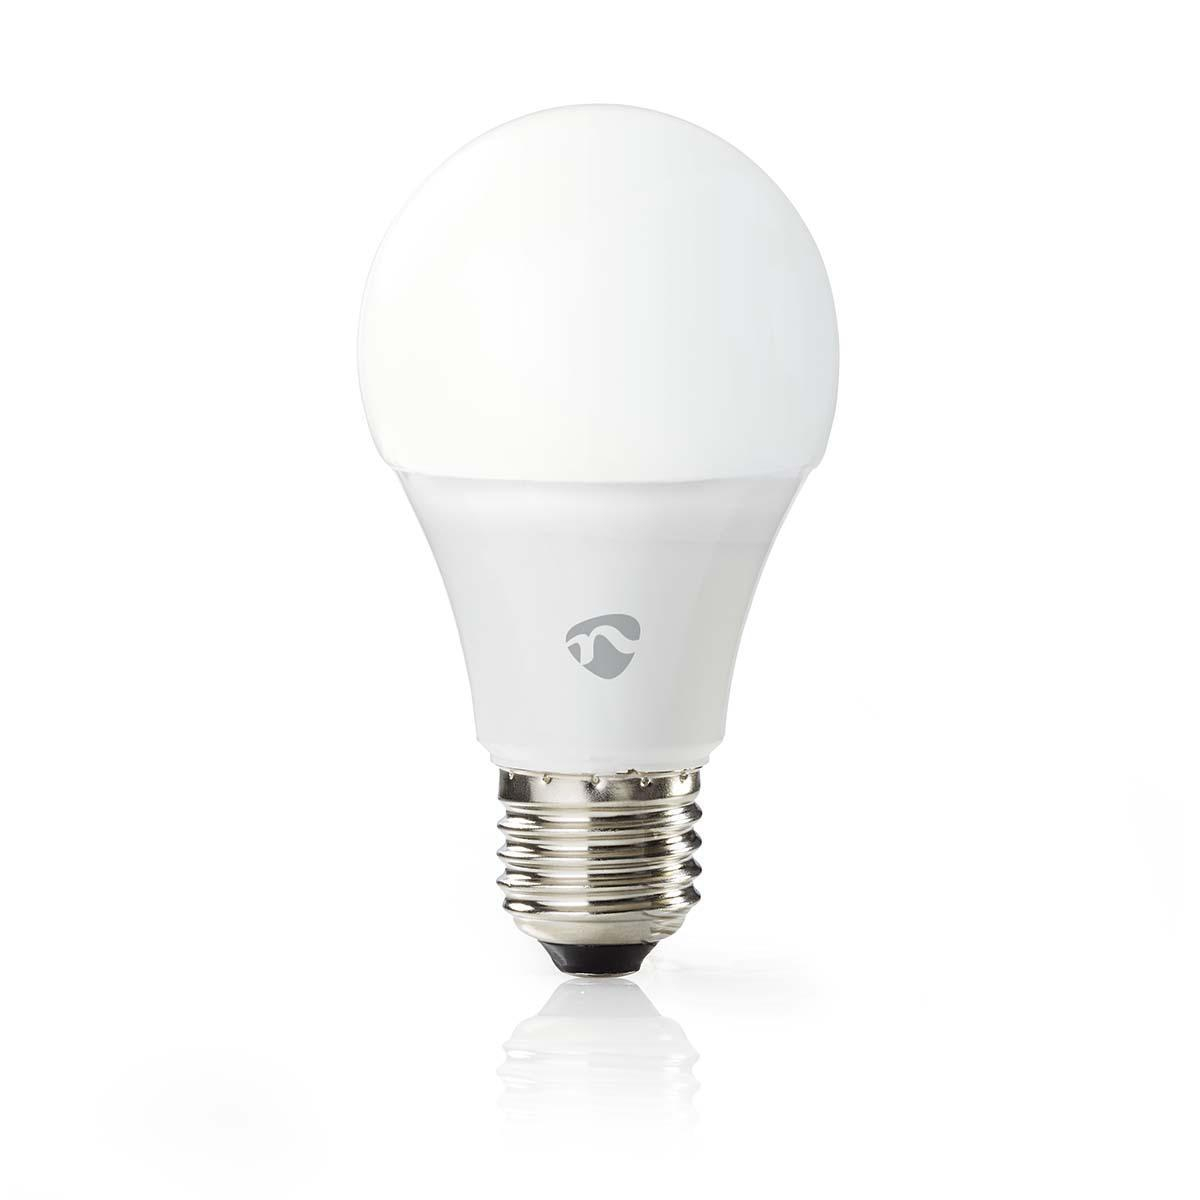 Led Lampen E27 Wi Fi Smart Led Lampen Warm Tot Koud Wit E27 3 Pack